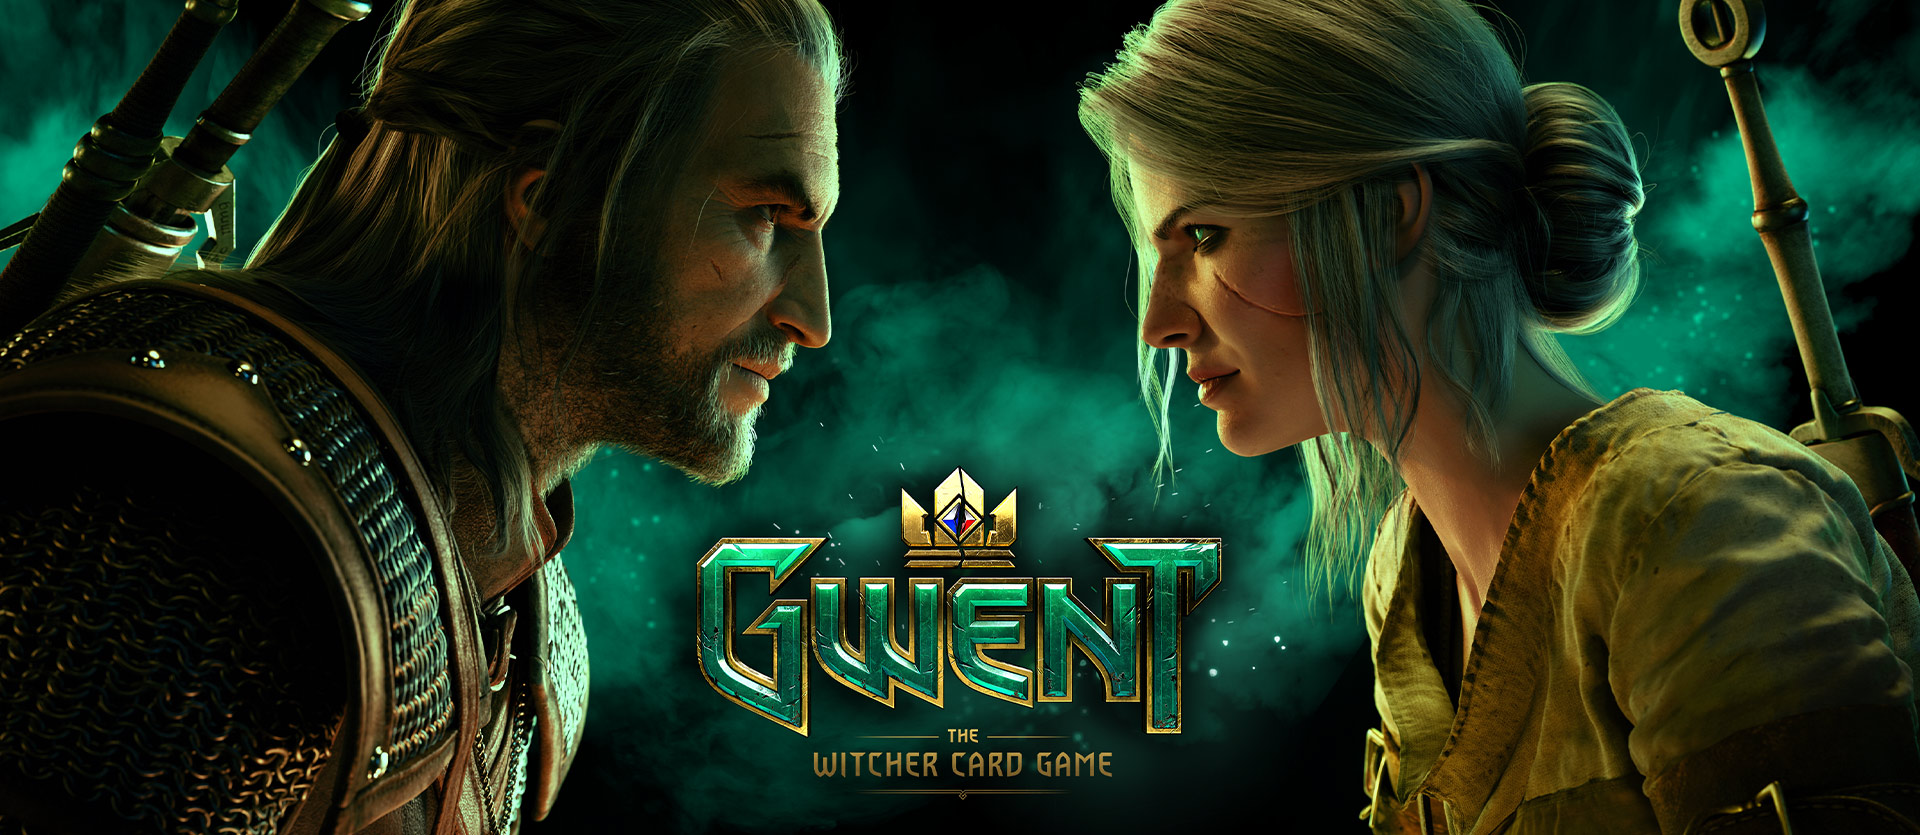 Gwent the Witcher Card Game,Geralt 和 Ciri 面對面的側面畫面